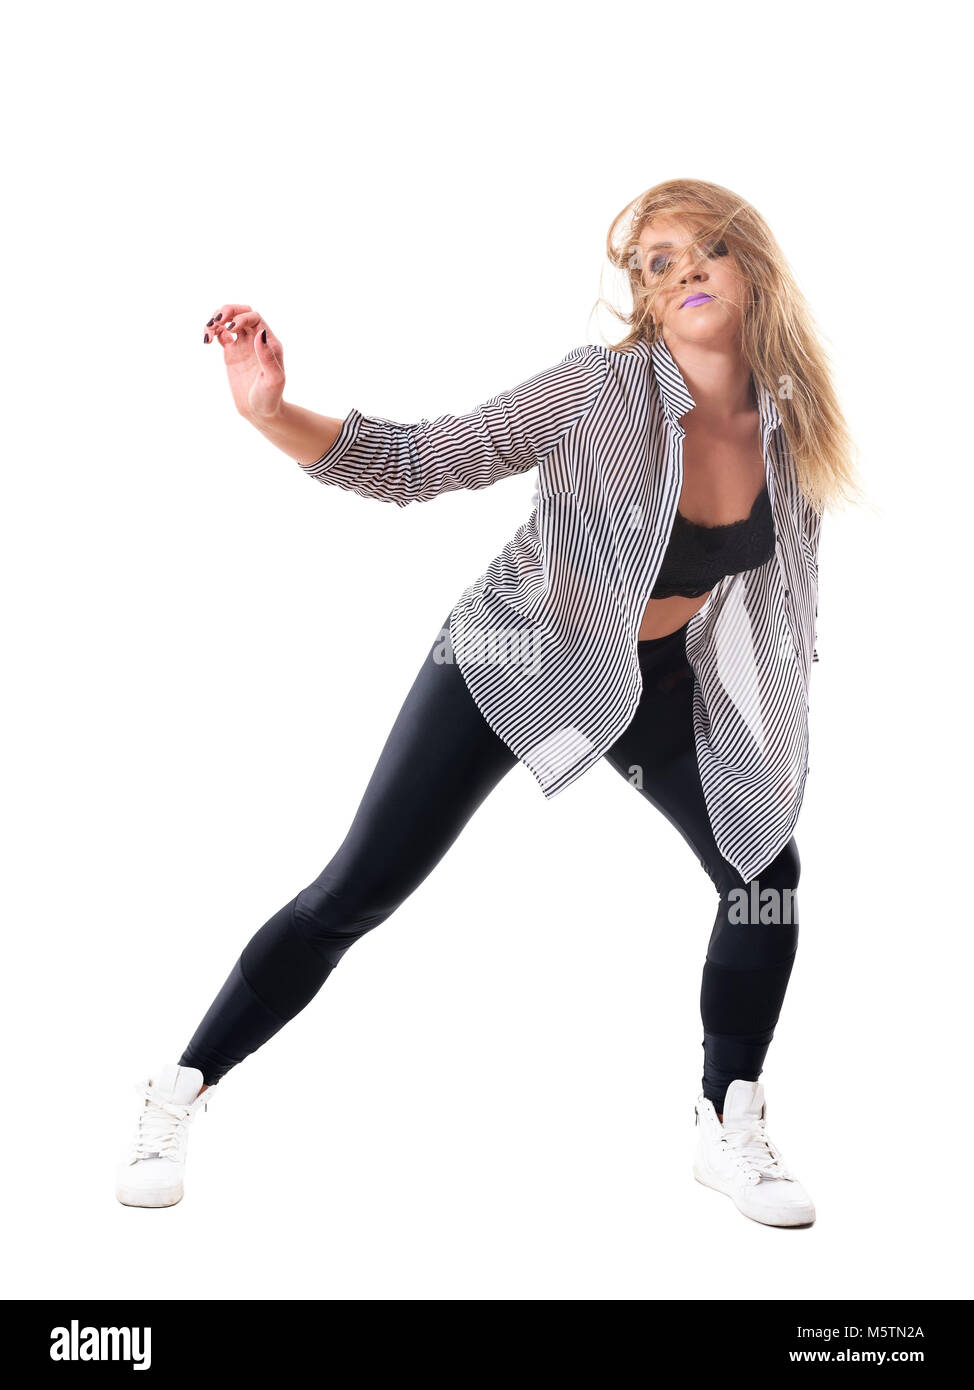 Energetic passionate female dancer in striped shirt with tousled hair and closed eyes. Full body length portrait - Stock Image